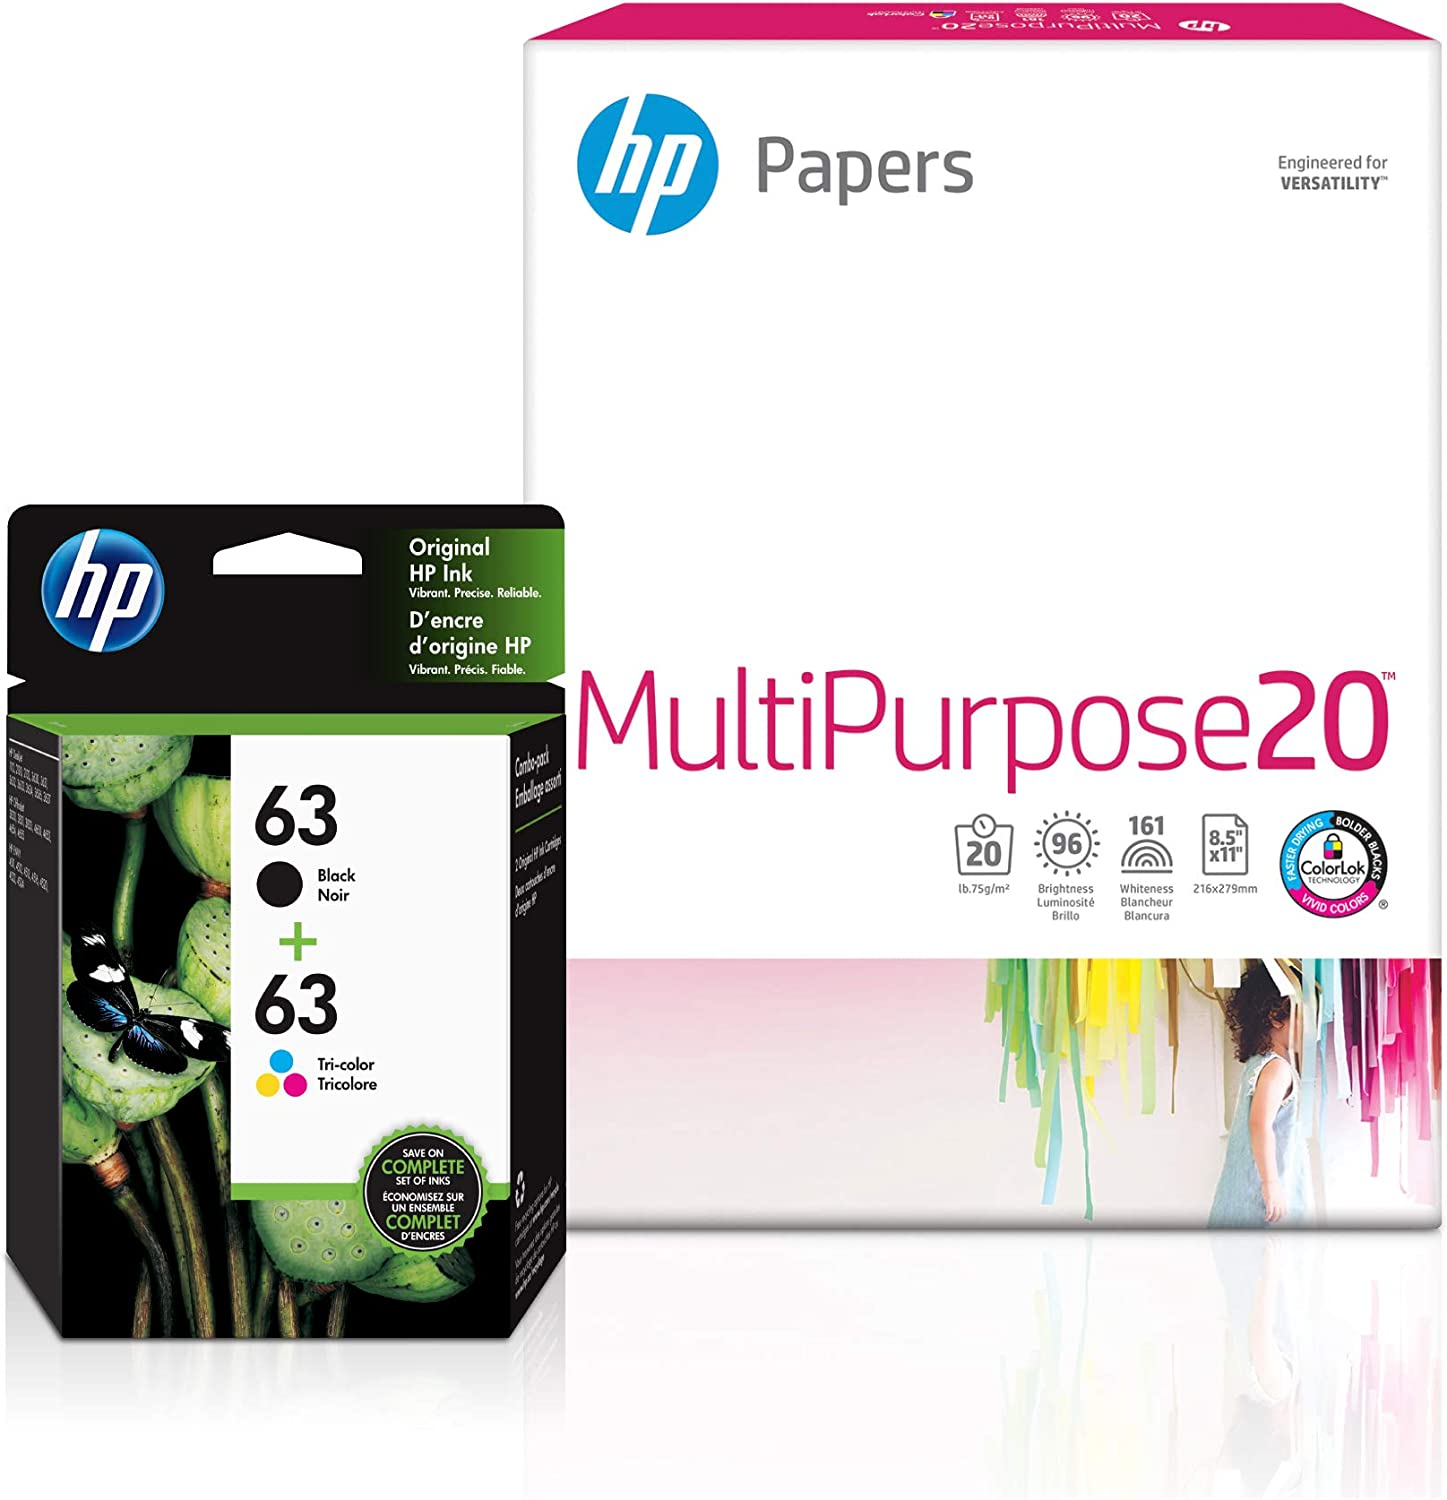 HP 63 | 2 Ink Cartridges with 150 Sheets of 8.5x11 Paper | Black, Tri-Color | F6U61AN, F6U62AN